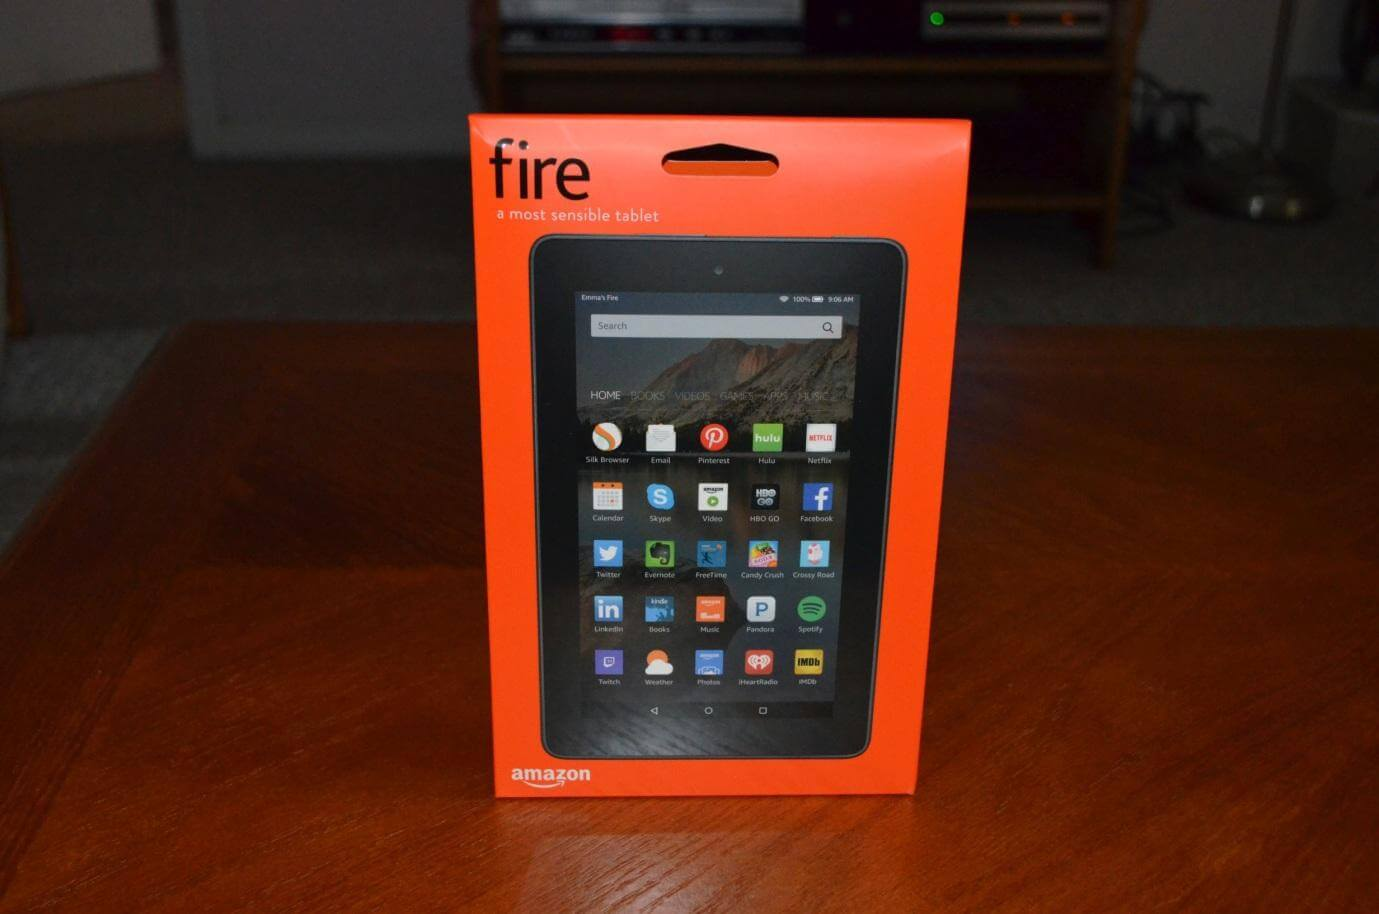 What Is Amazon Fire Tablet? How Does It Work?